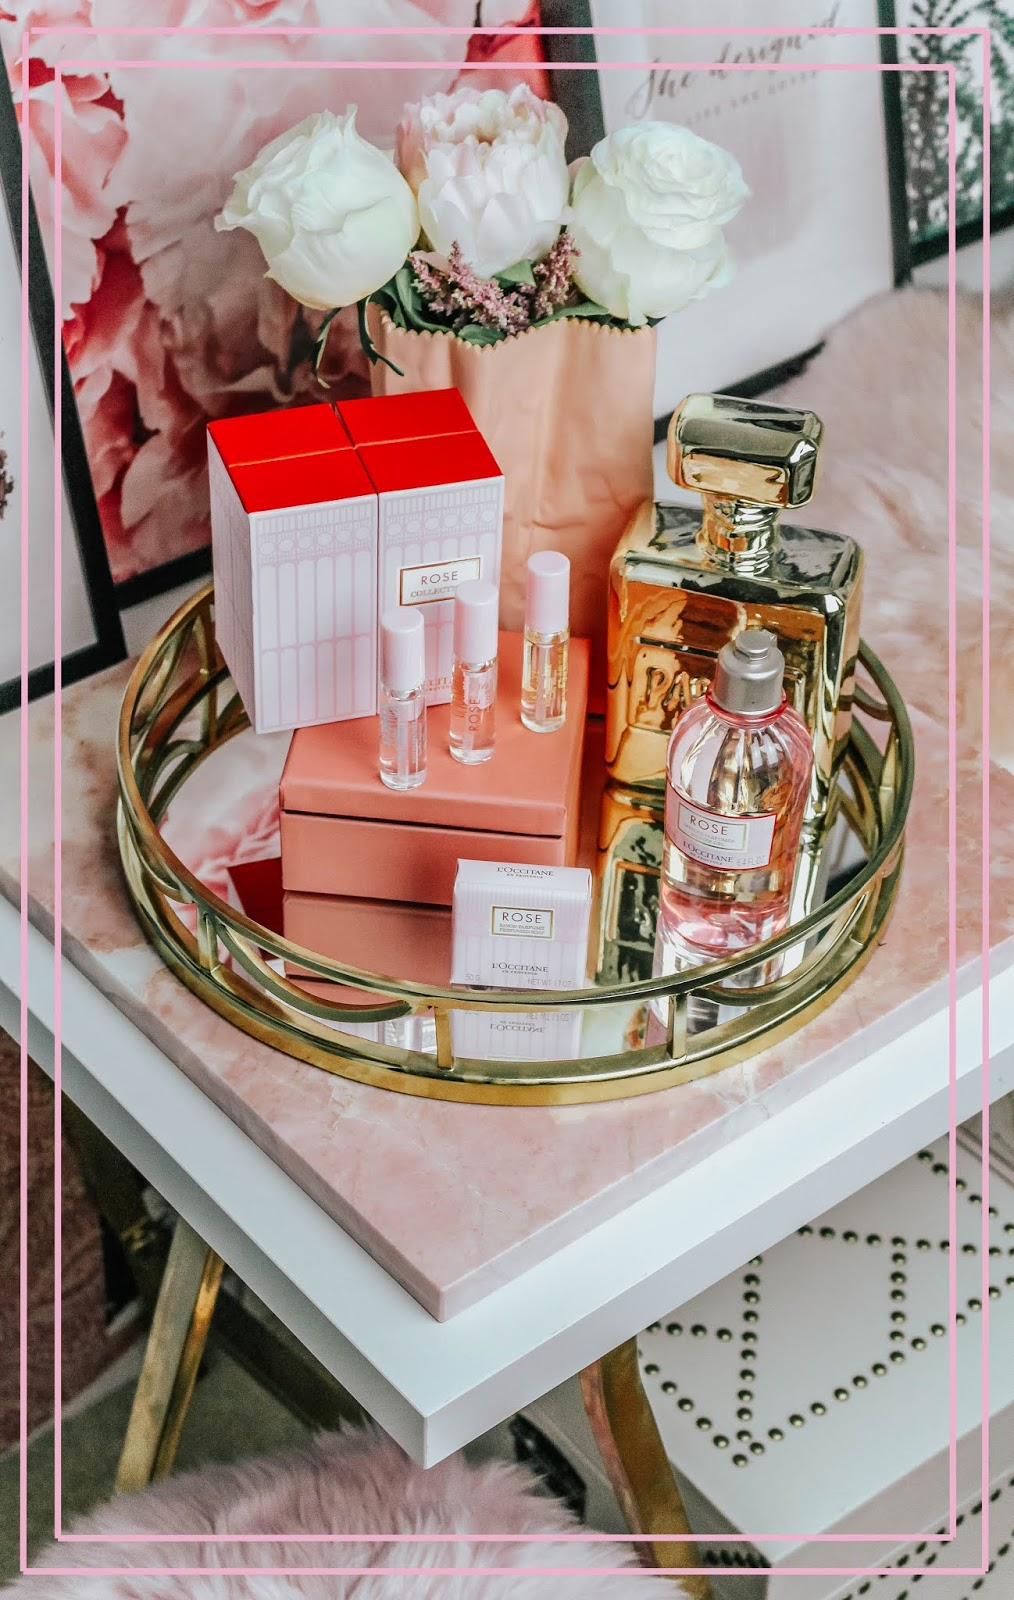 L'Occitane Rose Discovery Collection Blog Review